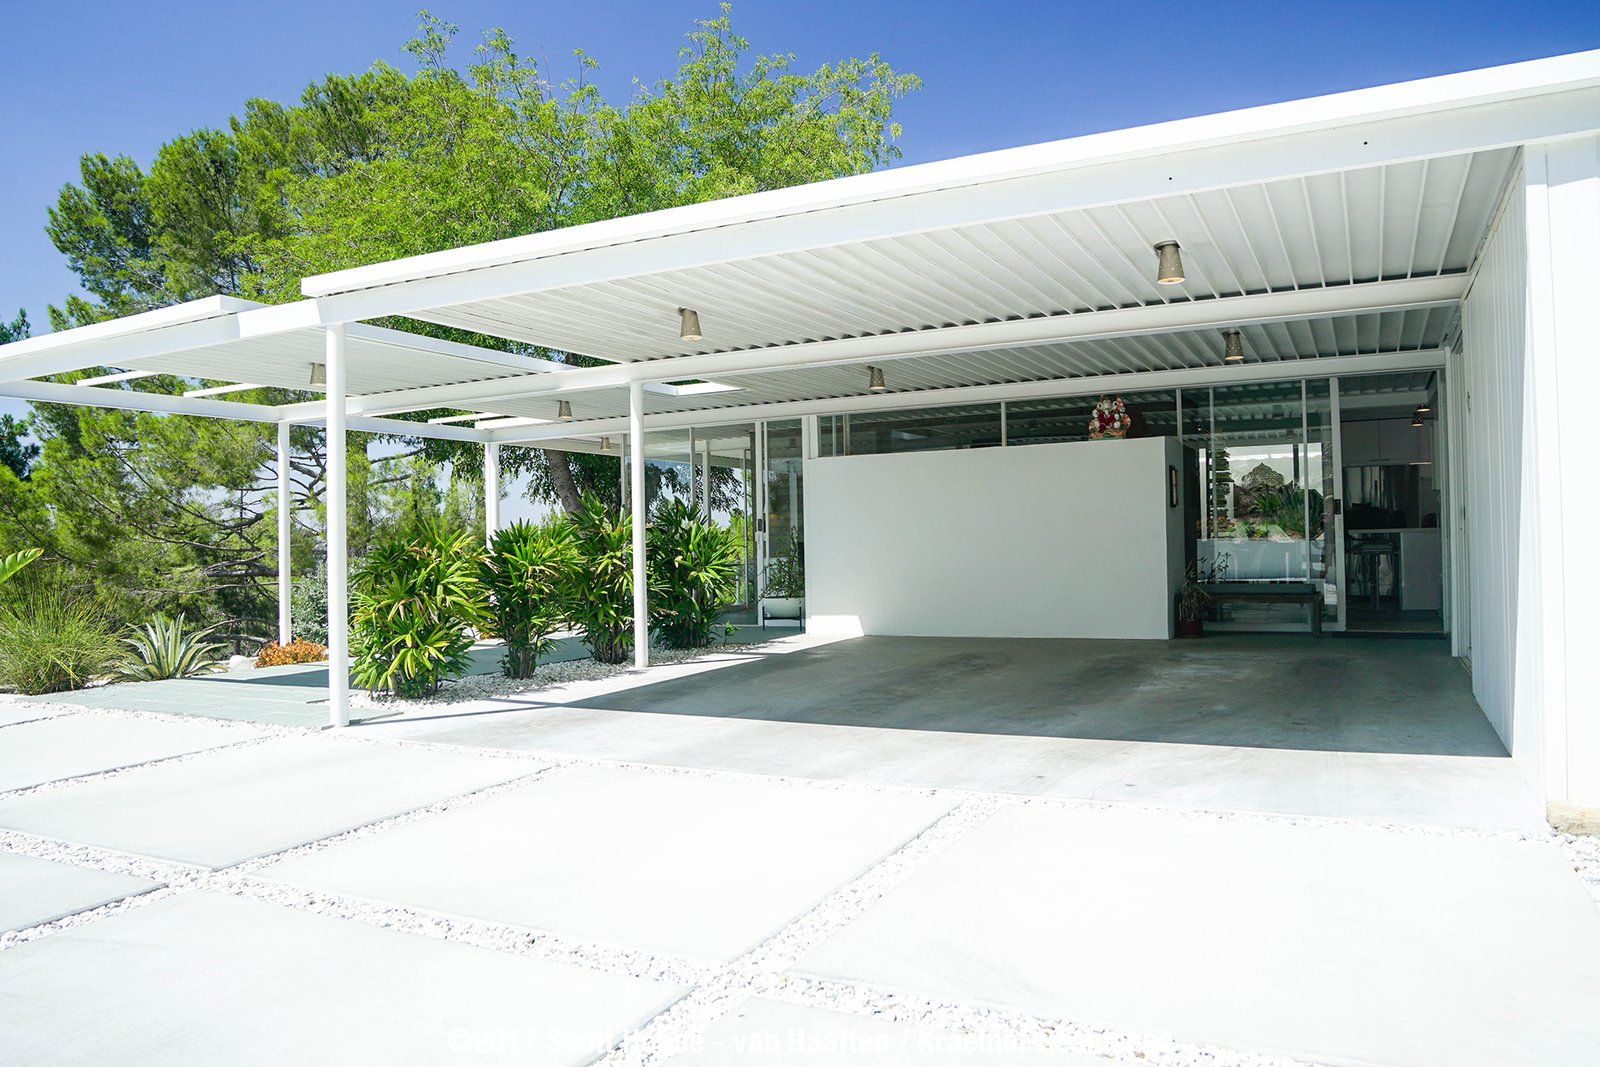 Ever Wanted to Stay in a Midcentury House Designed by Pierre Koenig? - Photo 1 of 18 -